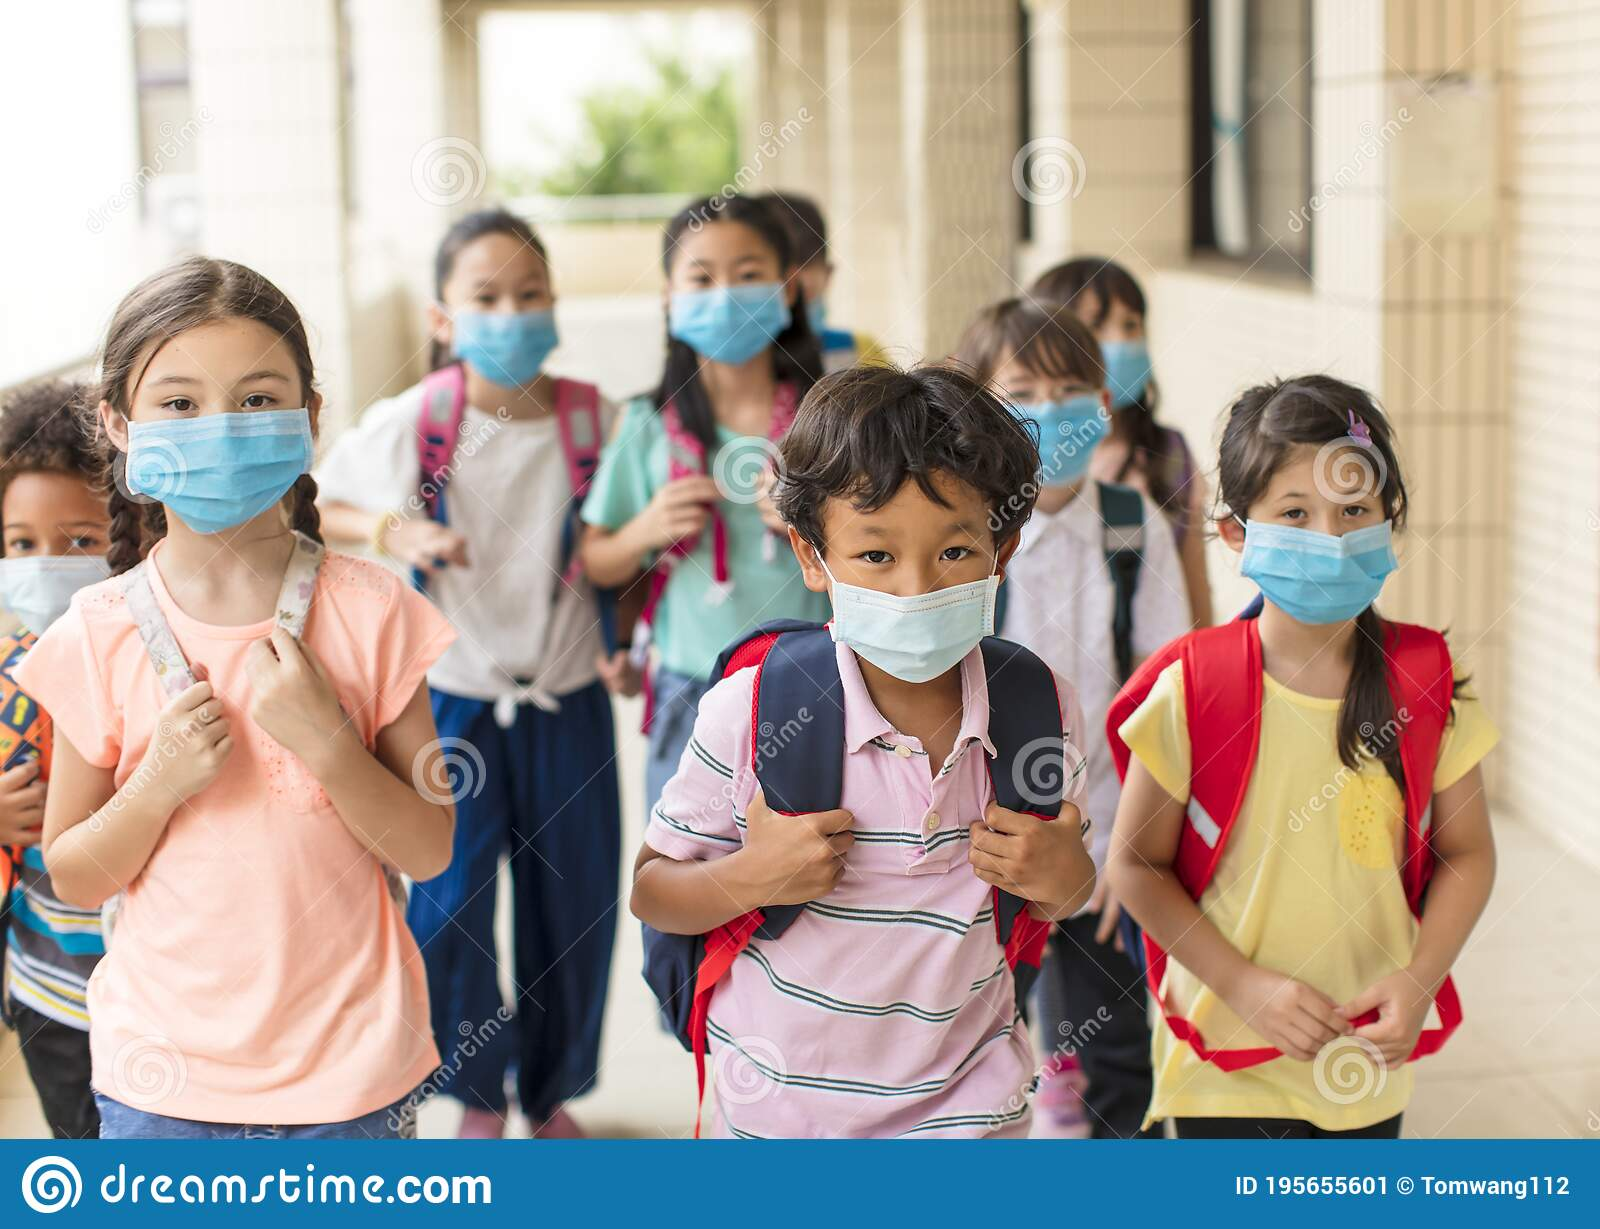 2,255 School Children Medical Face Mask Photos - Free & Royalty-Free Stock  Photos from Dreamstime